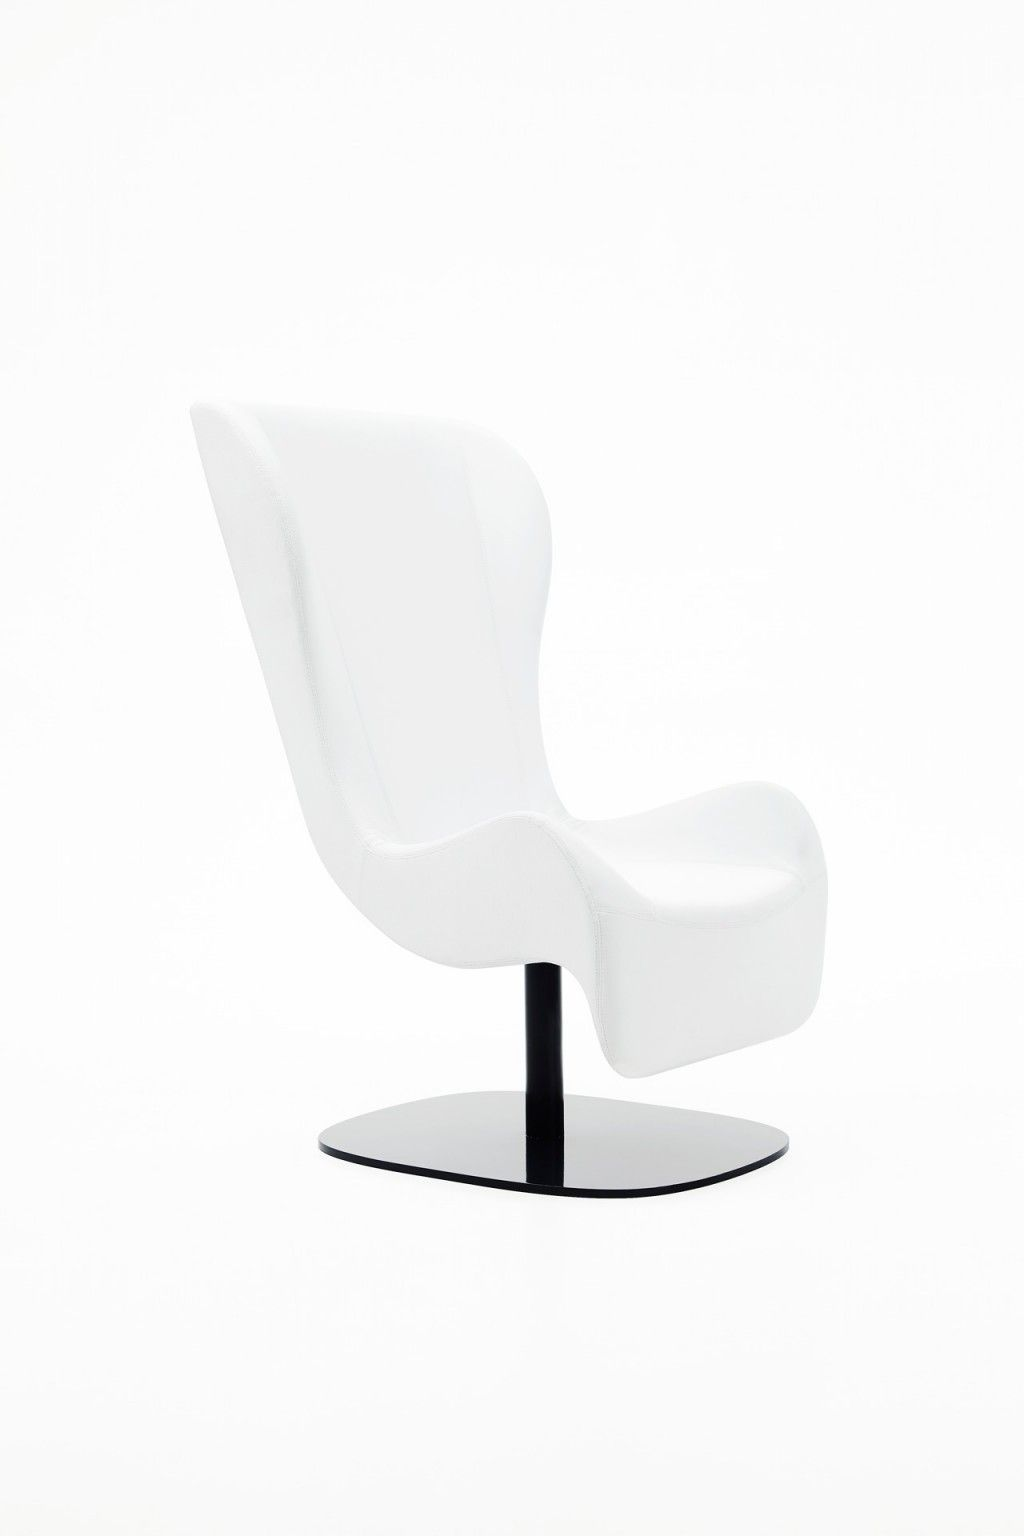 karim rashid Karim Rashid: An Eccentric Chair Collection Karim Rashid An Excentric Chair Collection 5